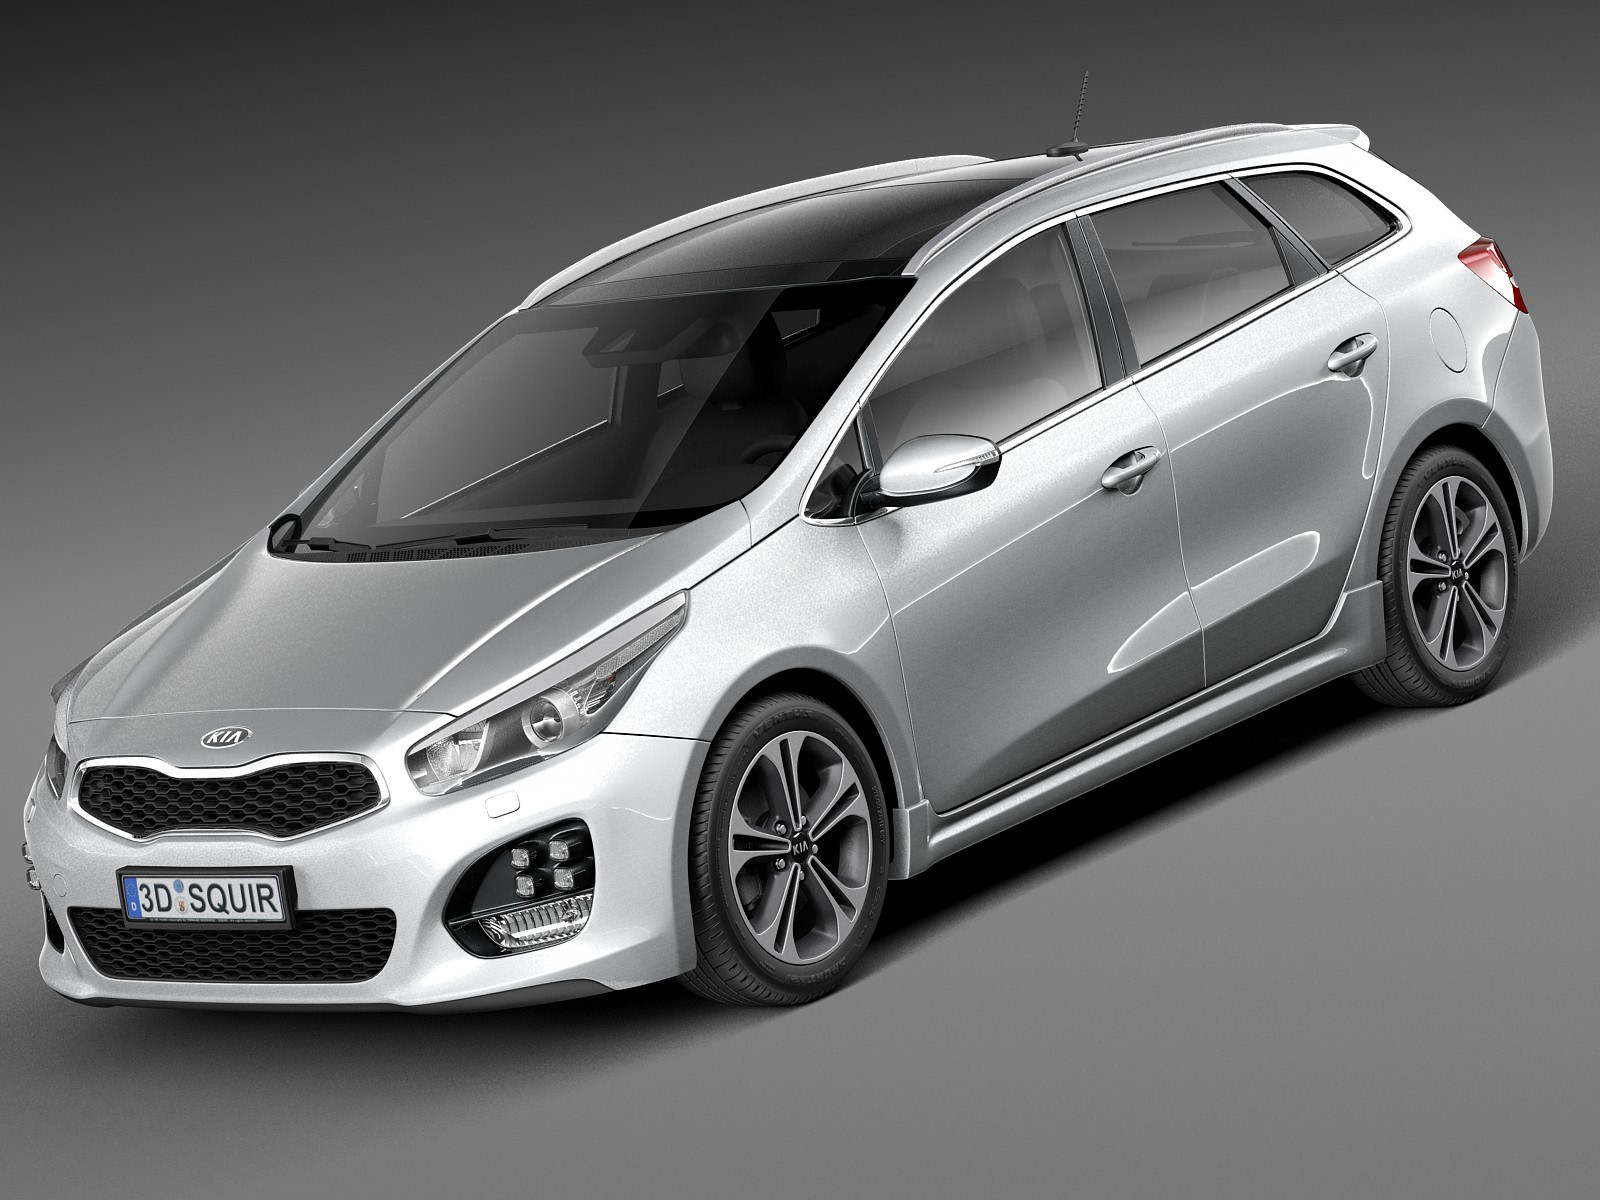 2018 Kia Ray photo - 1